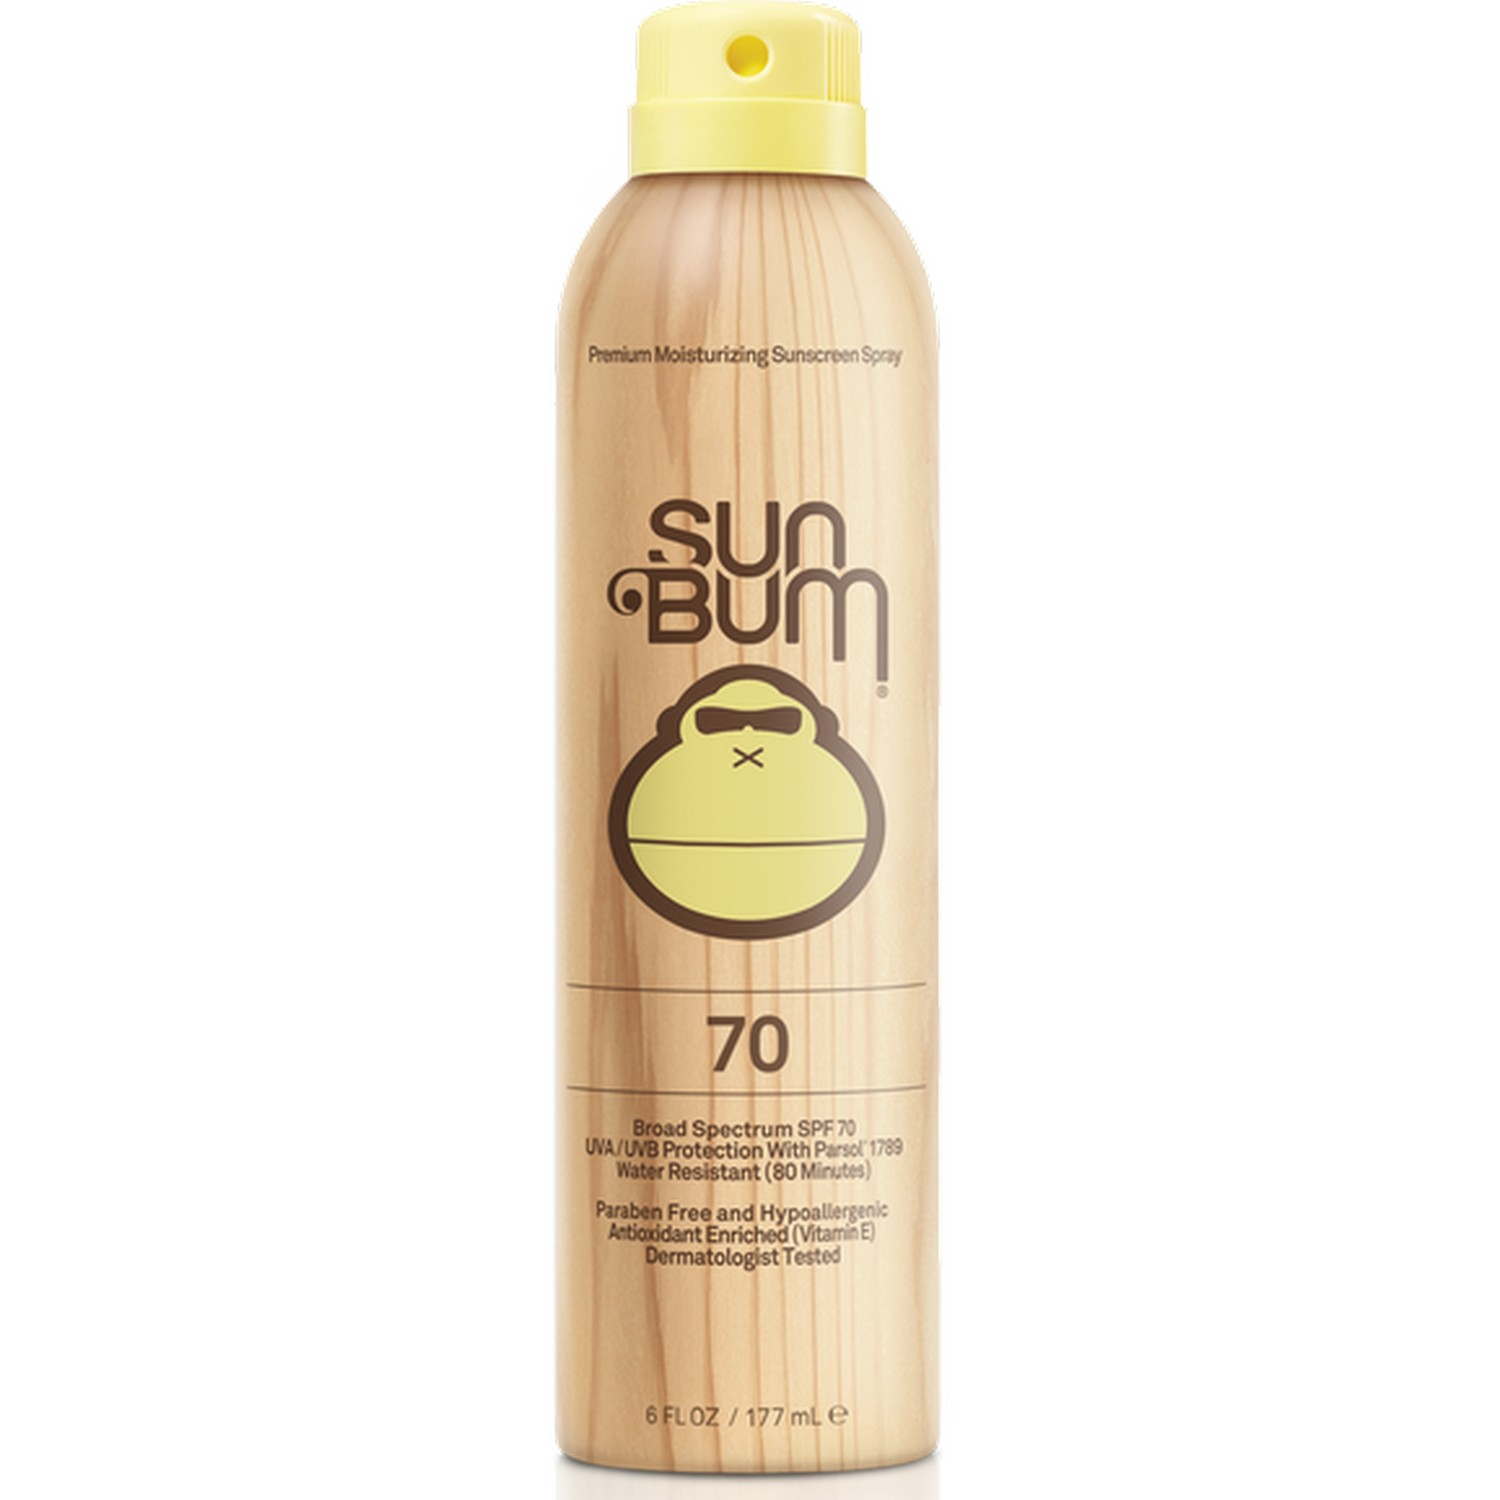 Sun Bum Premium Moisturizing Suncreen Spray 70 Broad Spectrum SPF 70 (6.0 fl oz / 177 ml)